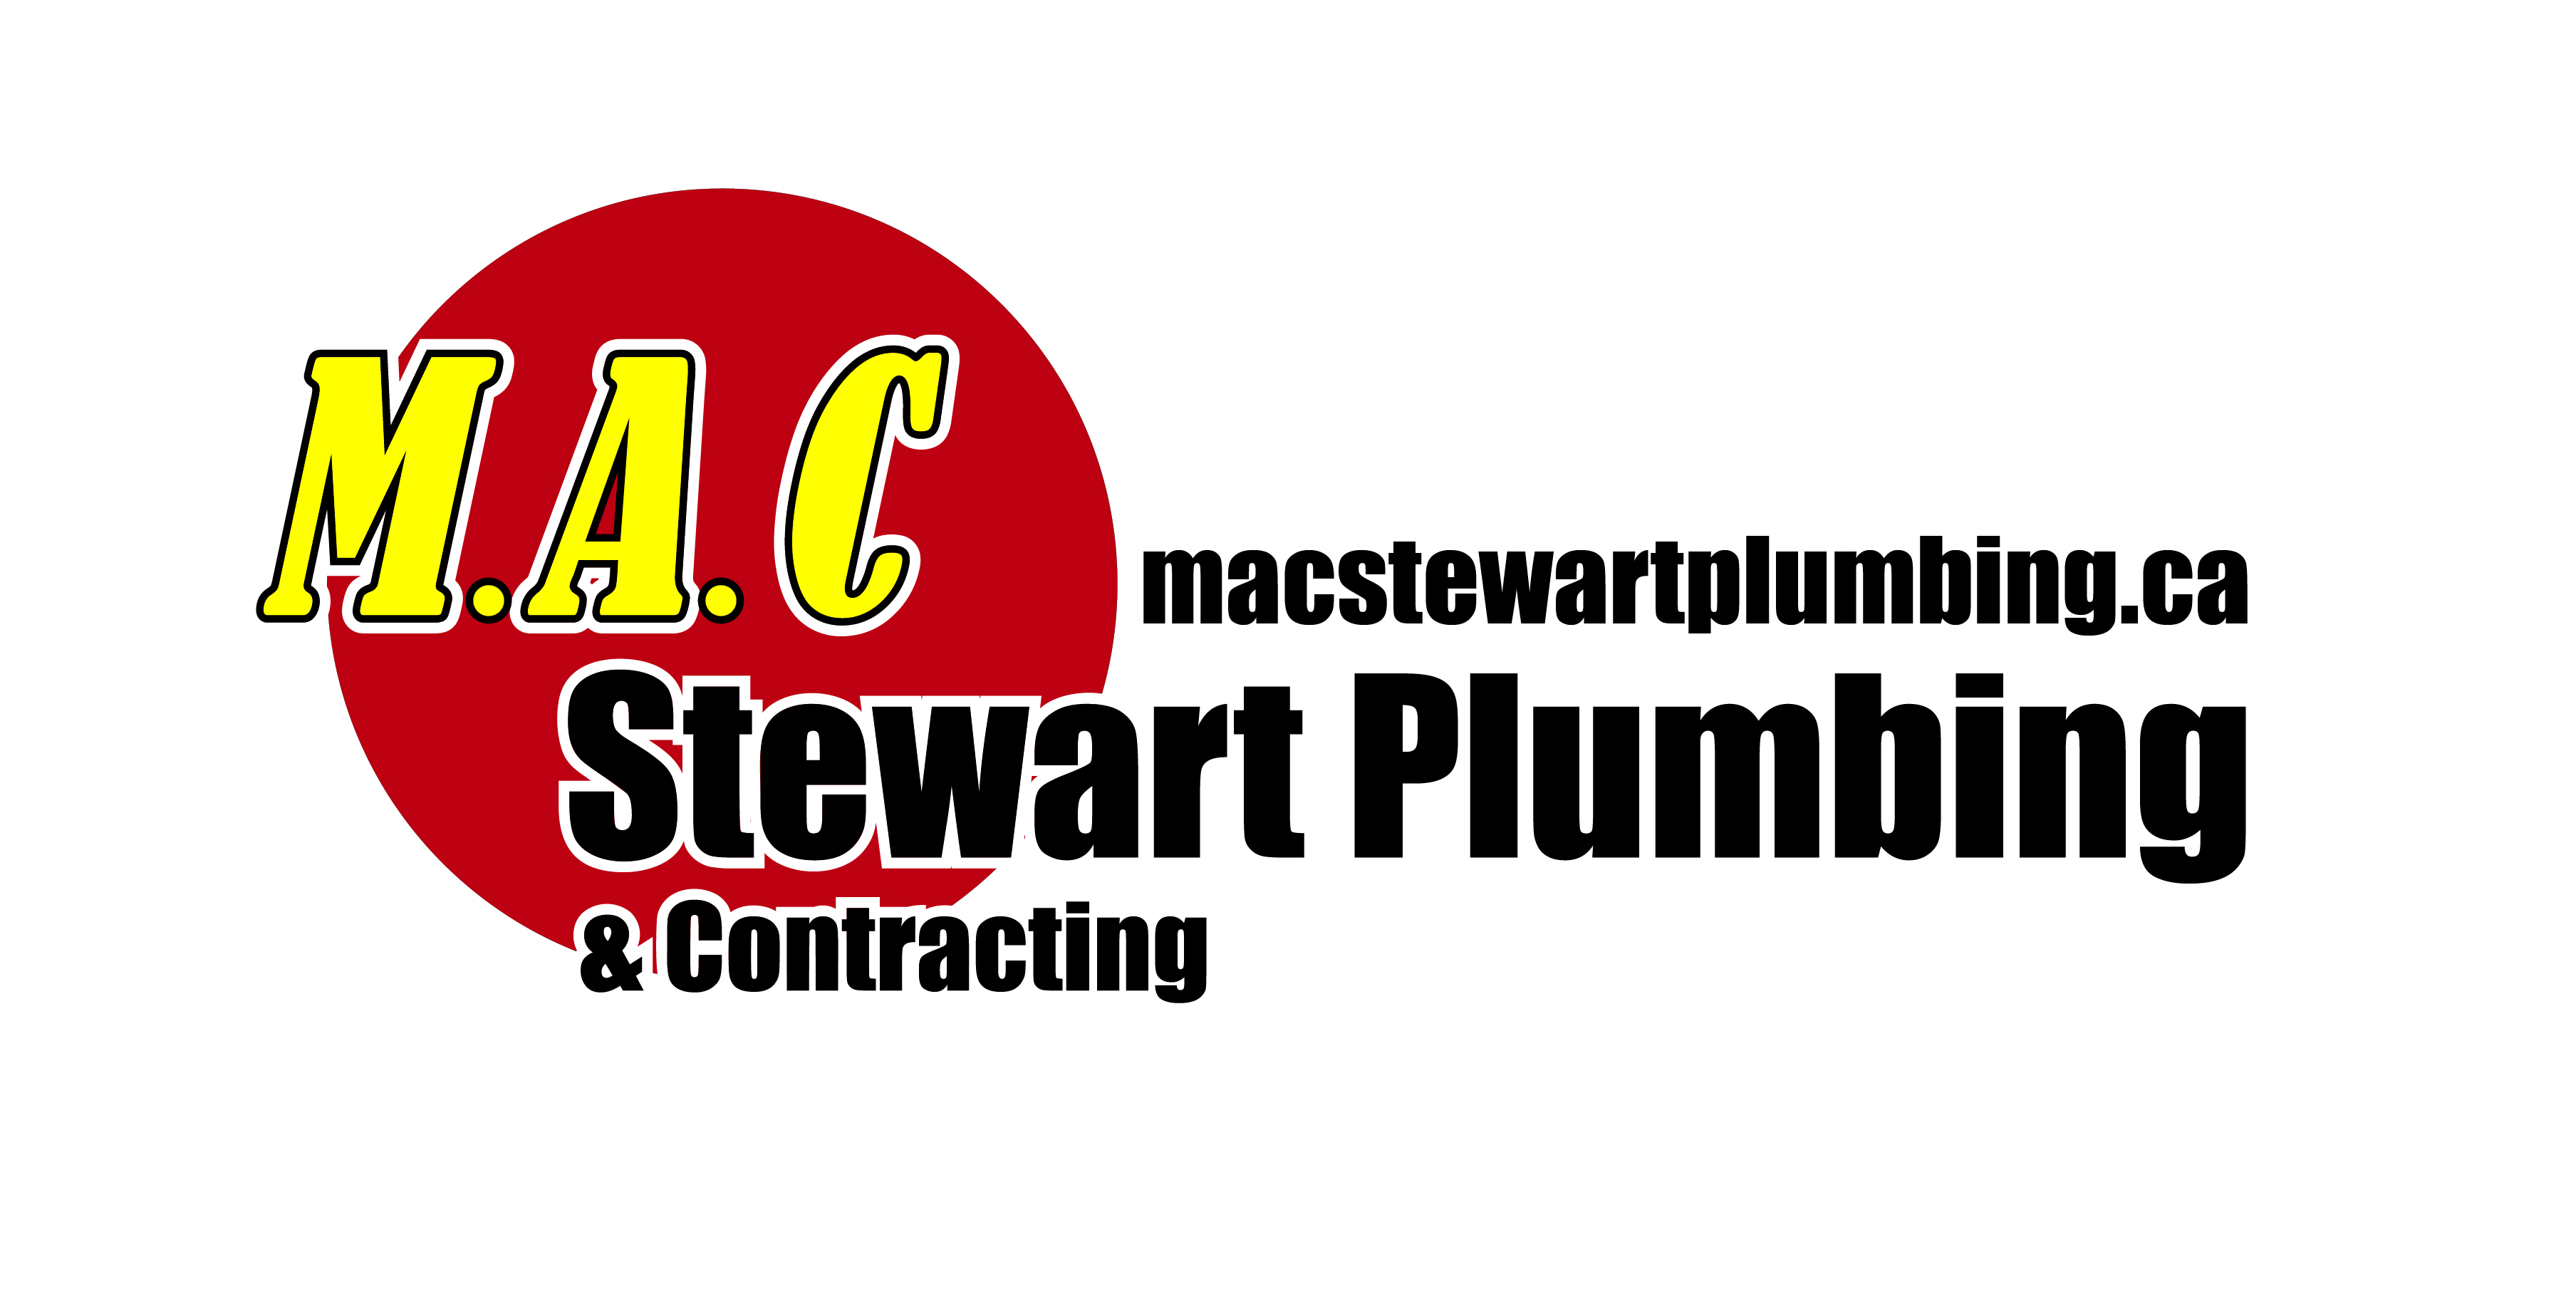 plumbing repairs, drain cleaning | M.A.C. Stewart Plumbing | Pumps